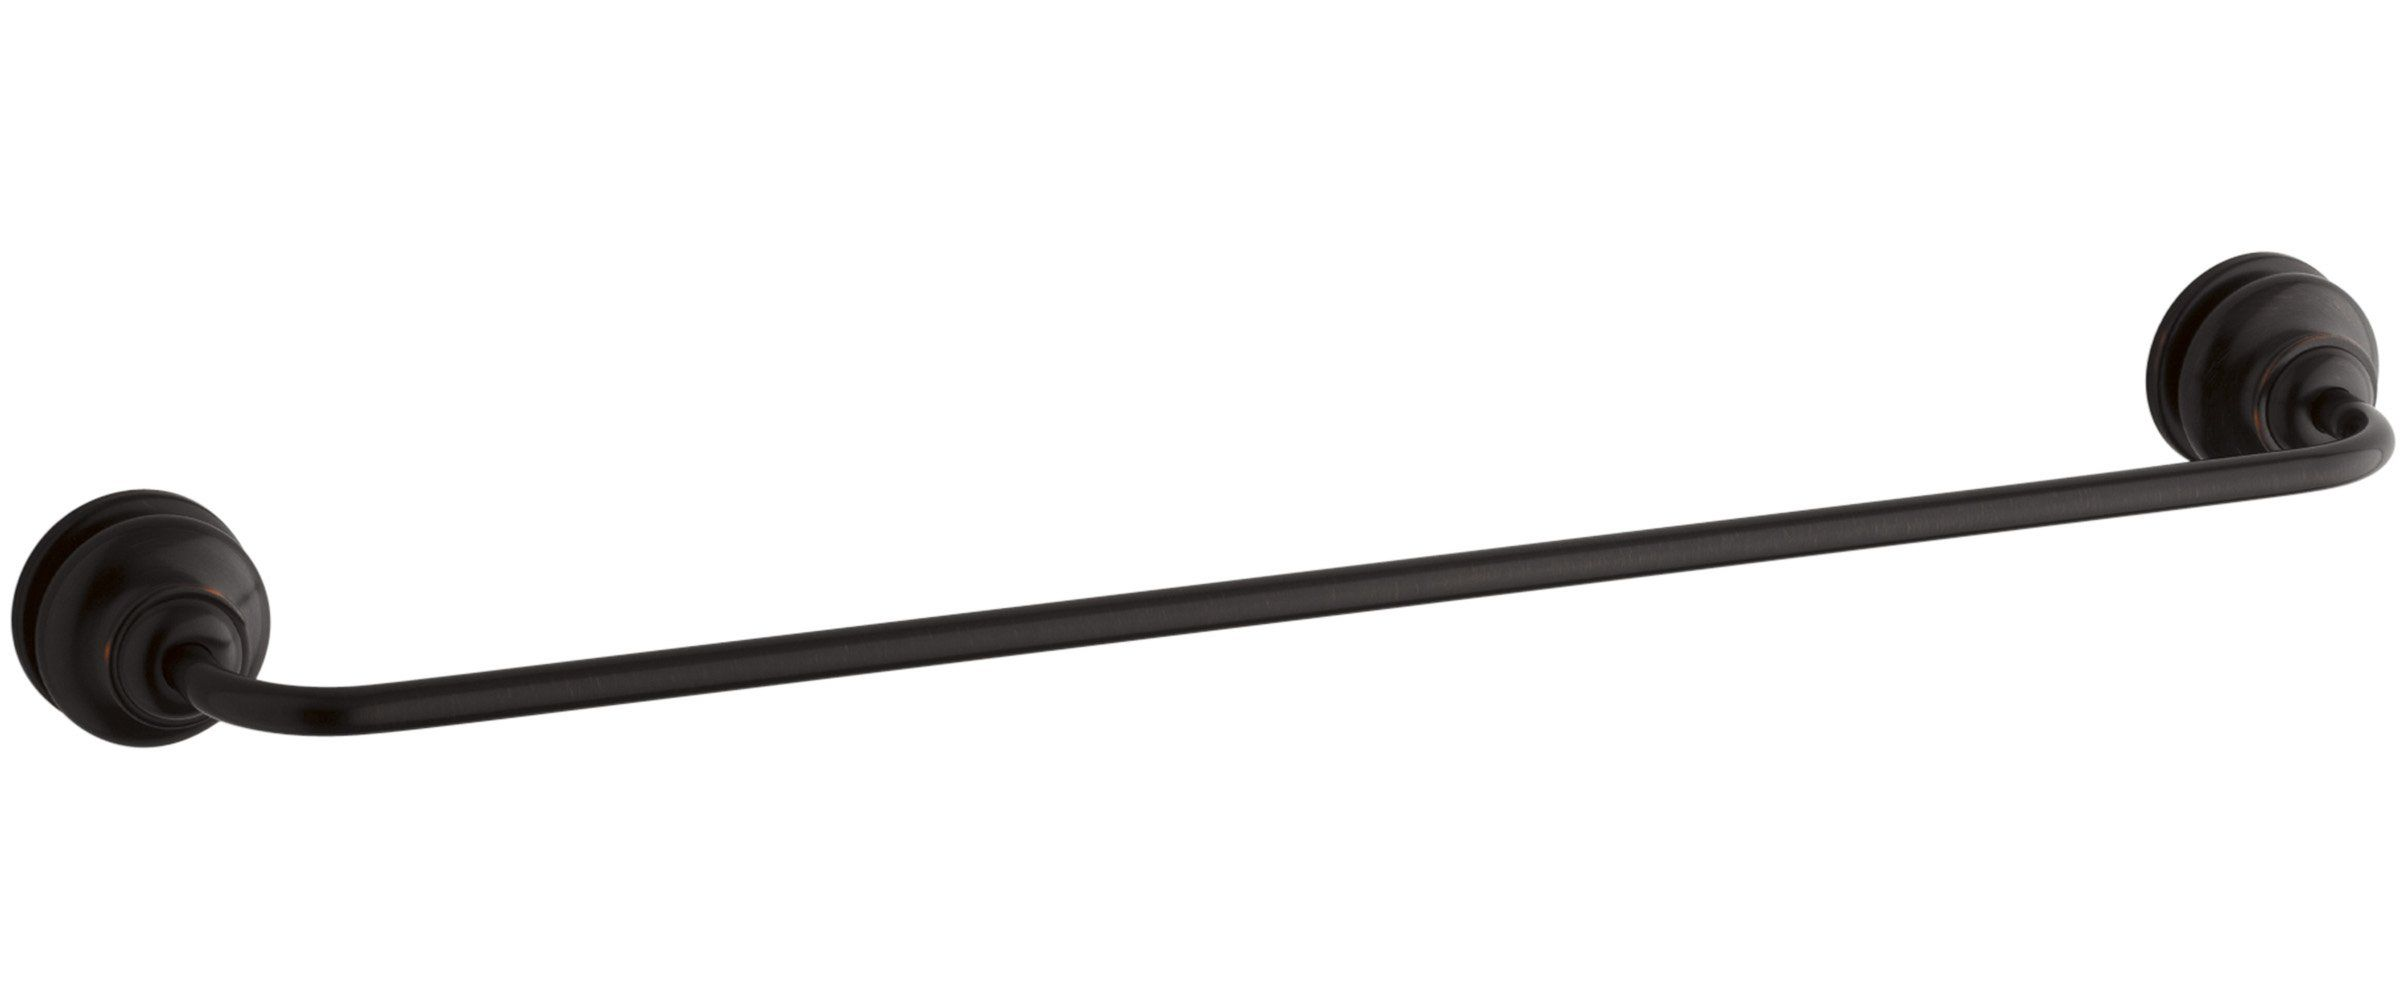 Kohler K 12151 2bz Fairfax 24 Inch Bathroom Towel Bar Oil Rubbed Bronze To View Further For This Item Vis In 2020 Towel Bar Oil Rubbed Bronze Bathroom Hardware Set